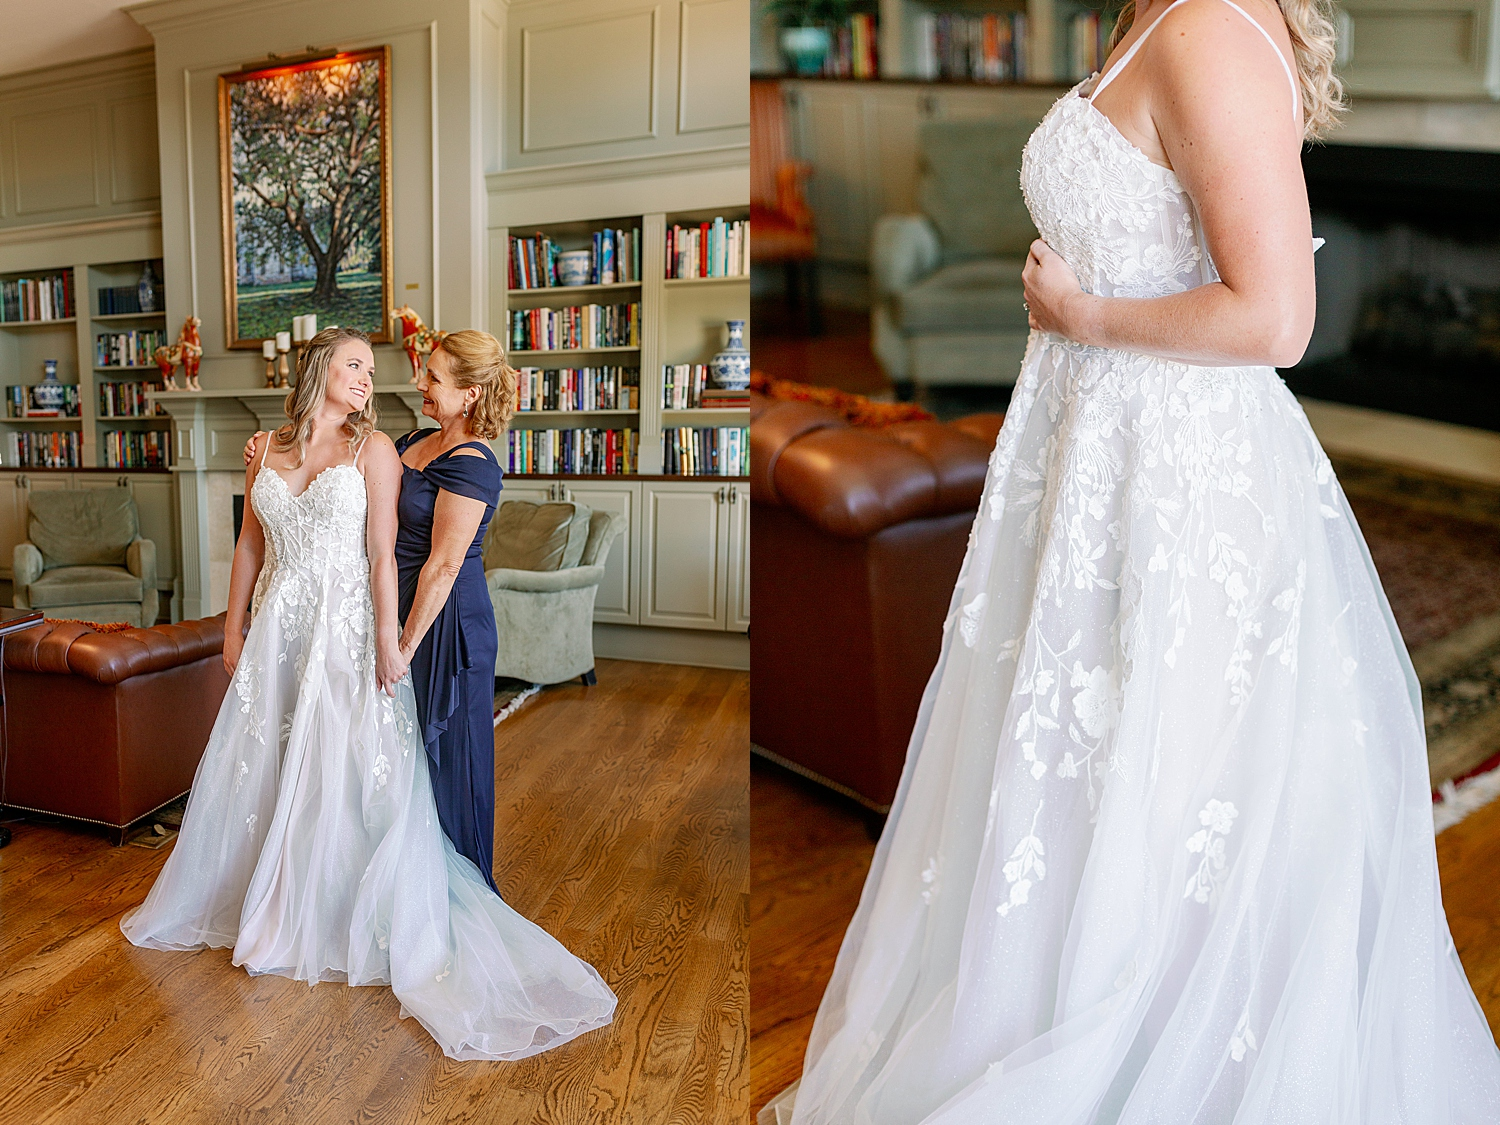 Bride with Mom getting ready for her wedding day